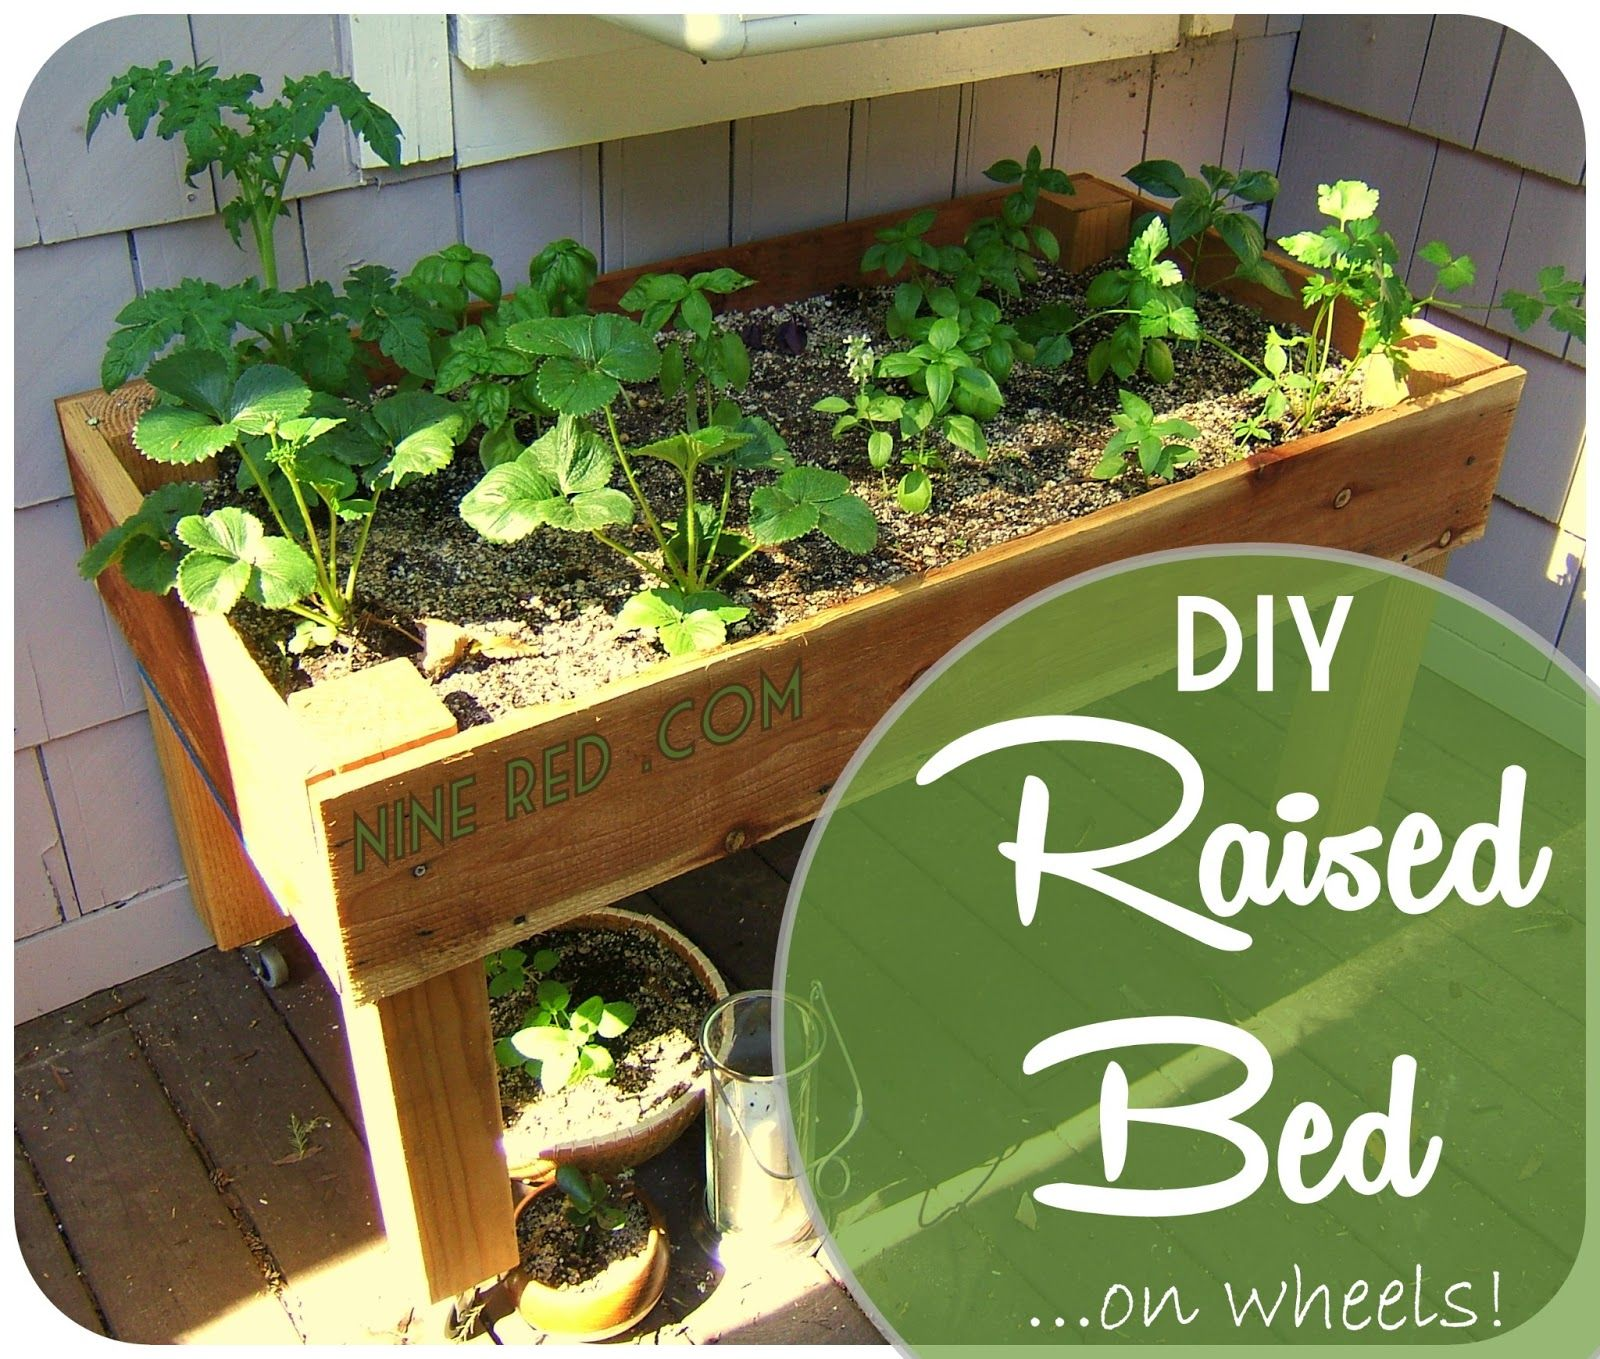 Superbe Raised Garden Table Plans | DIY Simple Raised Bed.... On Wheels!